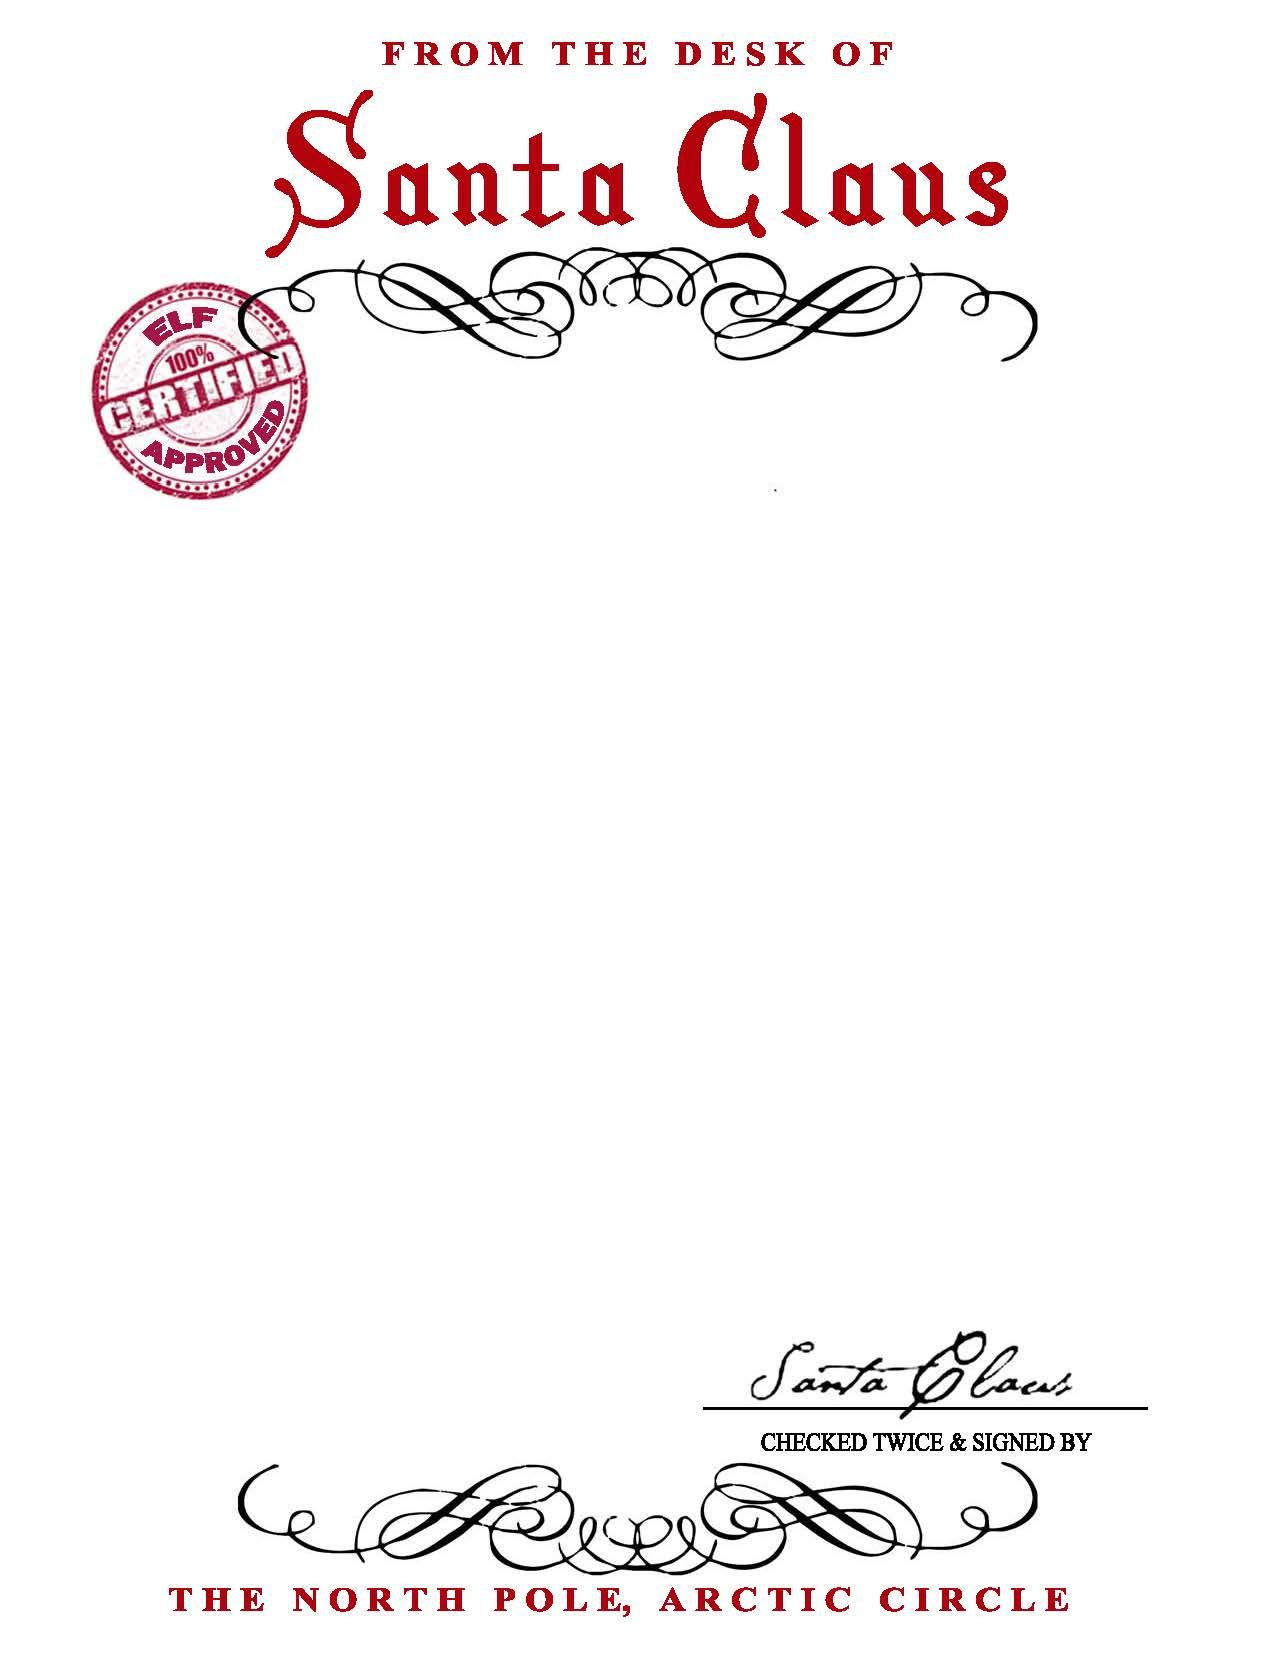 SANTA CLAUS LETTERHEAD Will Bring Lots Of Joy To Children - Free printable letter from santa template